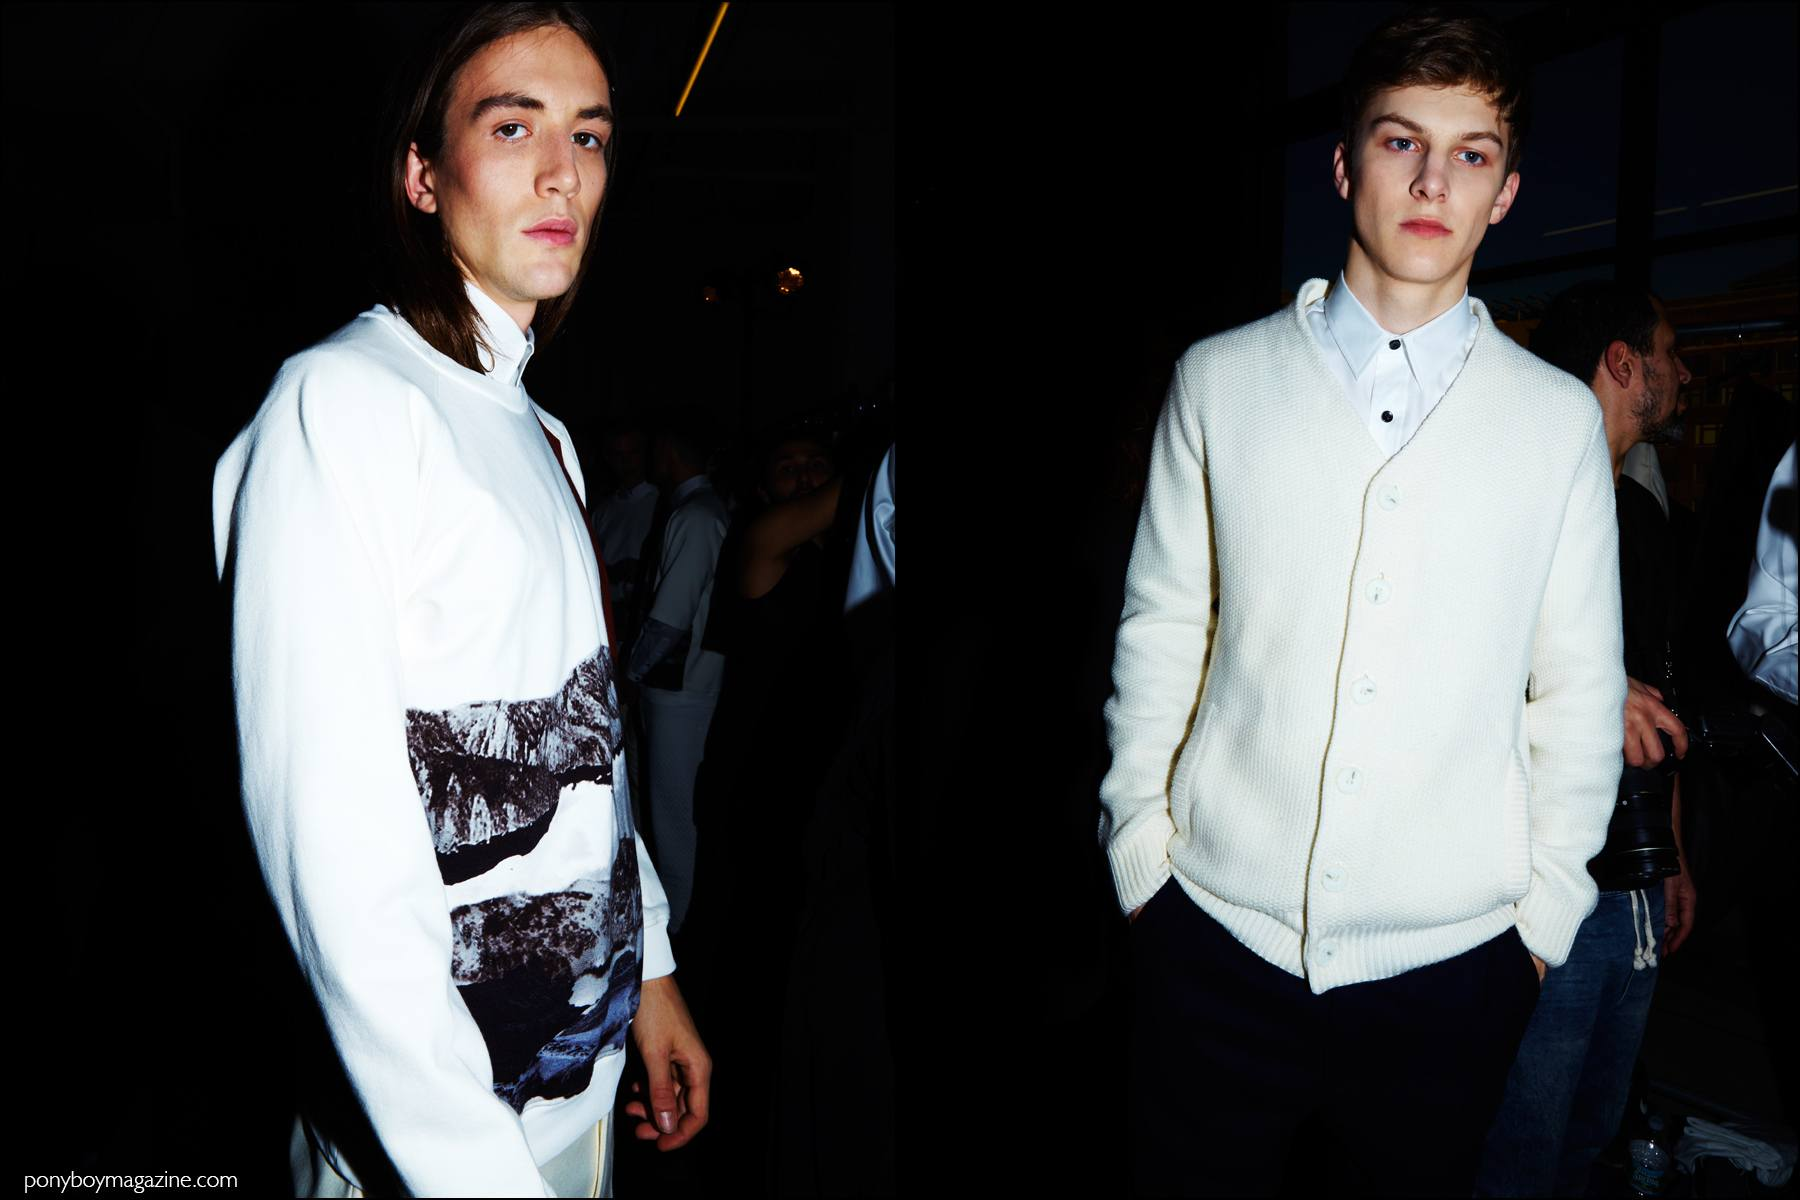 Male models in winter whites, photographed backstage at Carlos Campos F/W16 menswear show. Photography by Alexander Thompson for Ponyboy magazine NY.